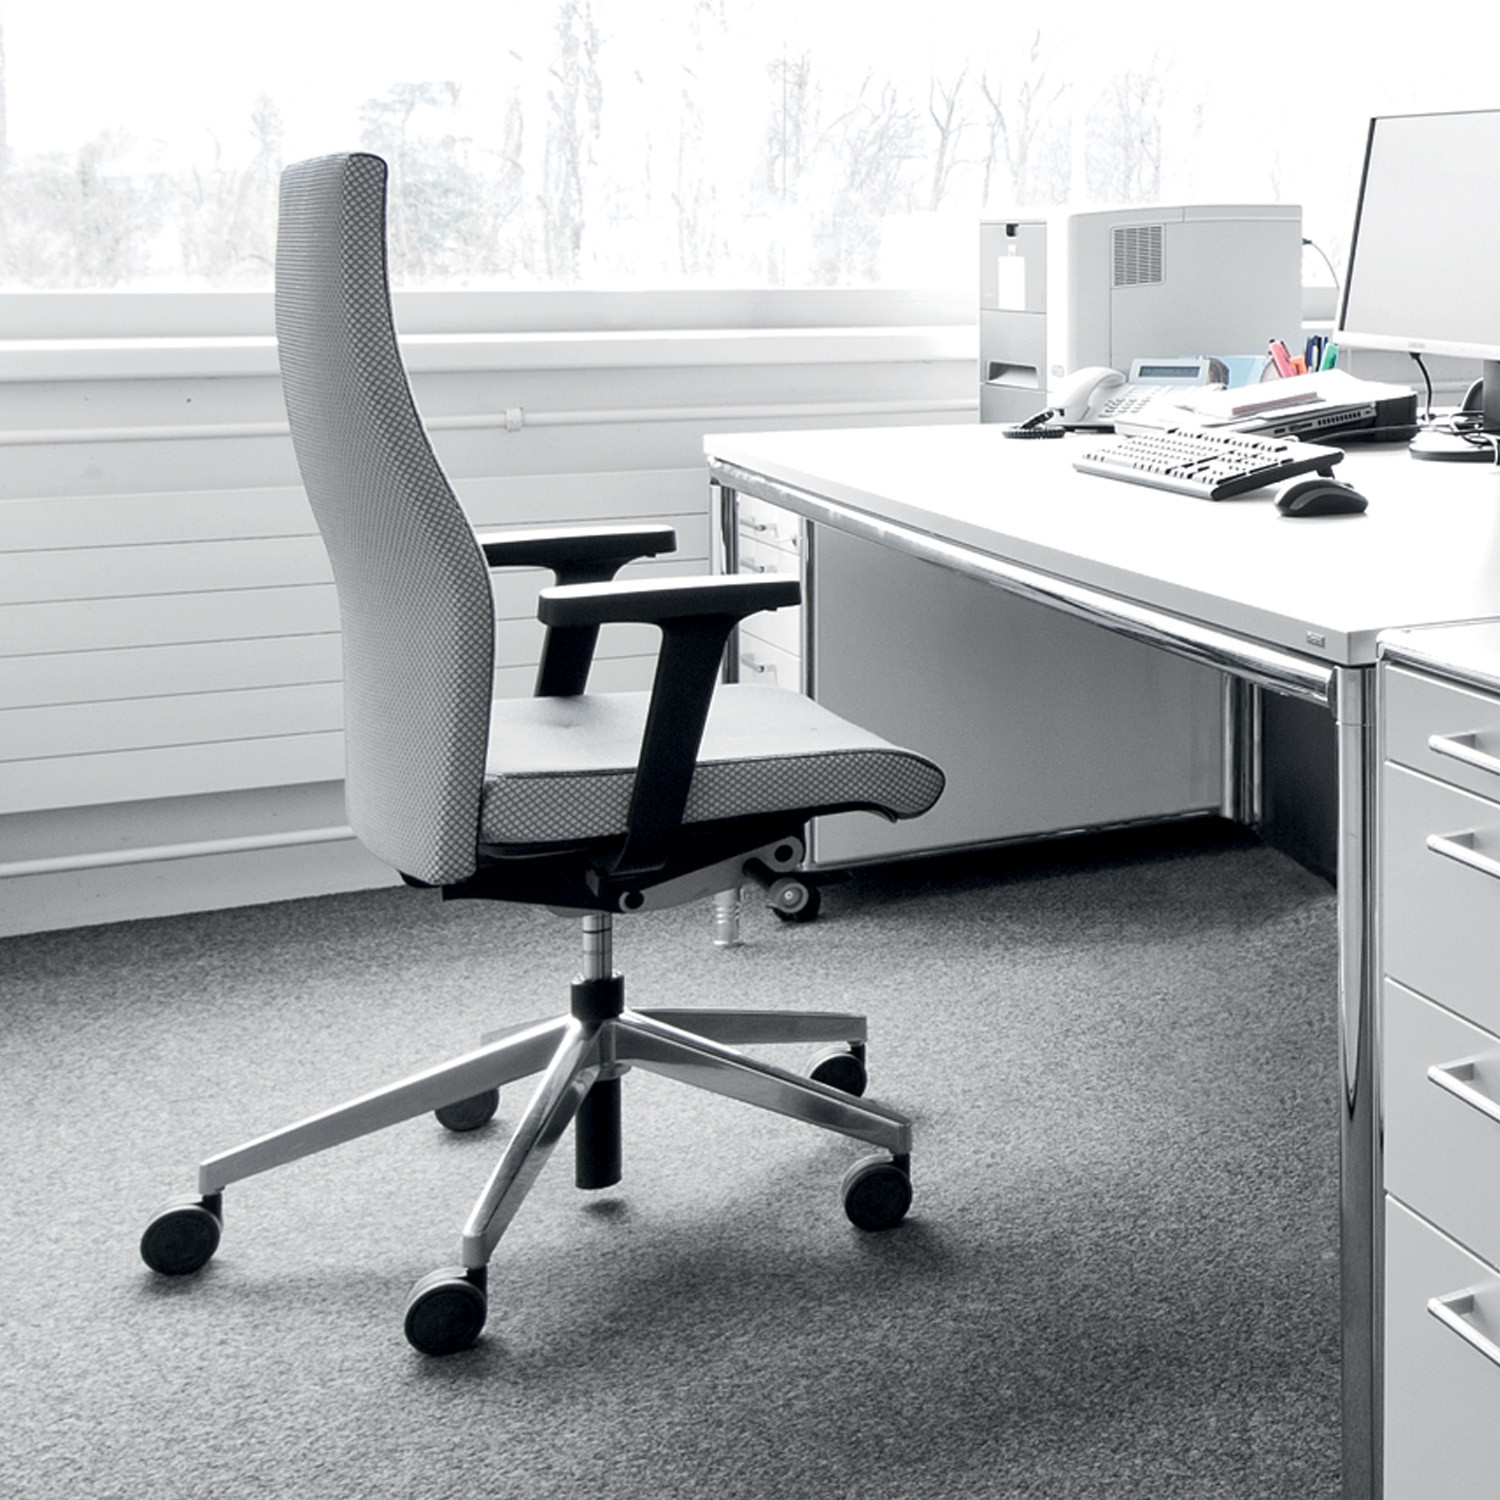 CuboFLEX Ergonomic Office Chair by Zuco